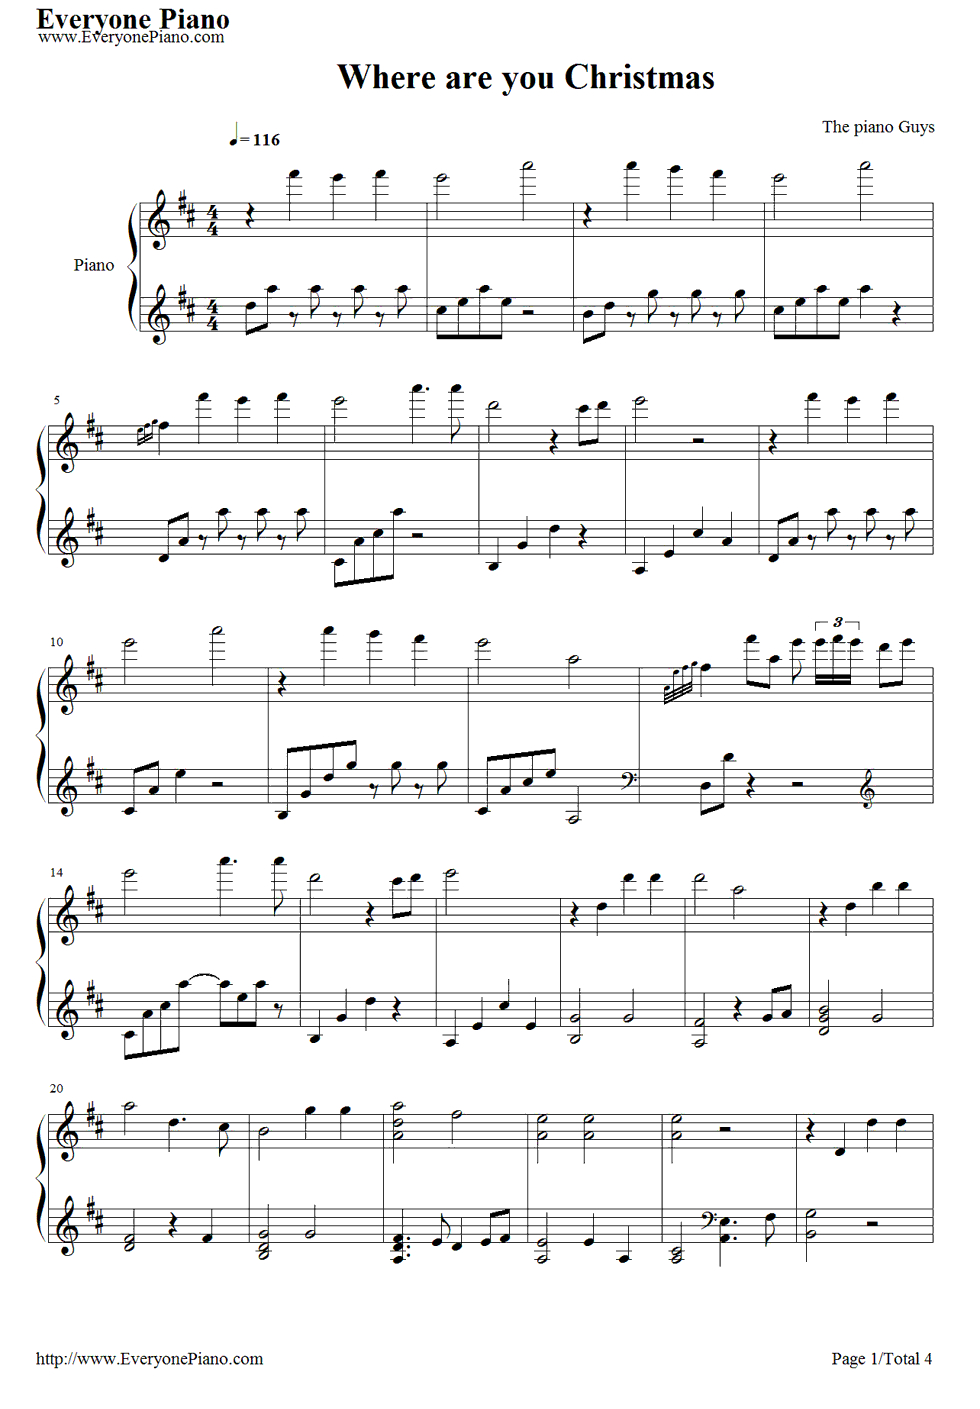 Free Where Are You Christmas-The Piano Guys Sheet Music Preview 1 - Free Printable Christmas Music Sheets Piano